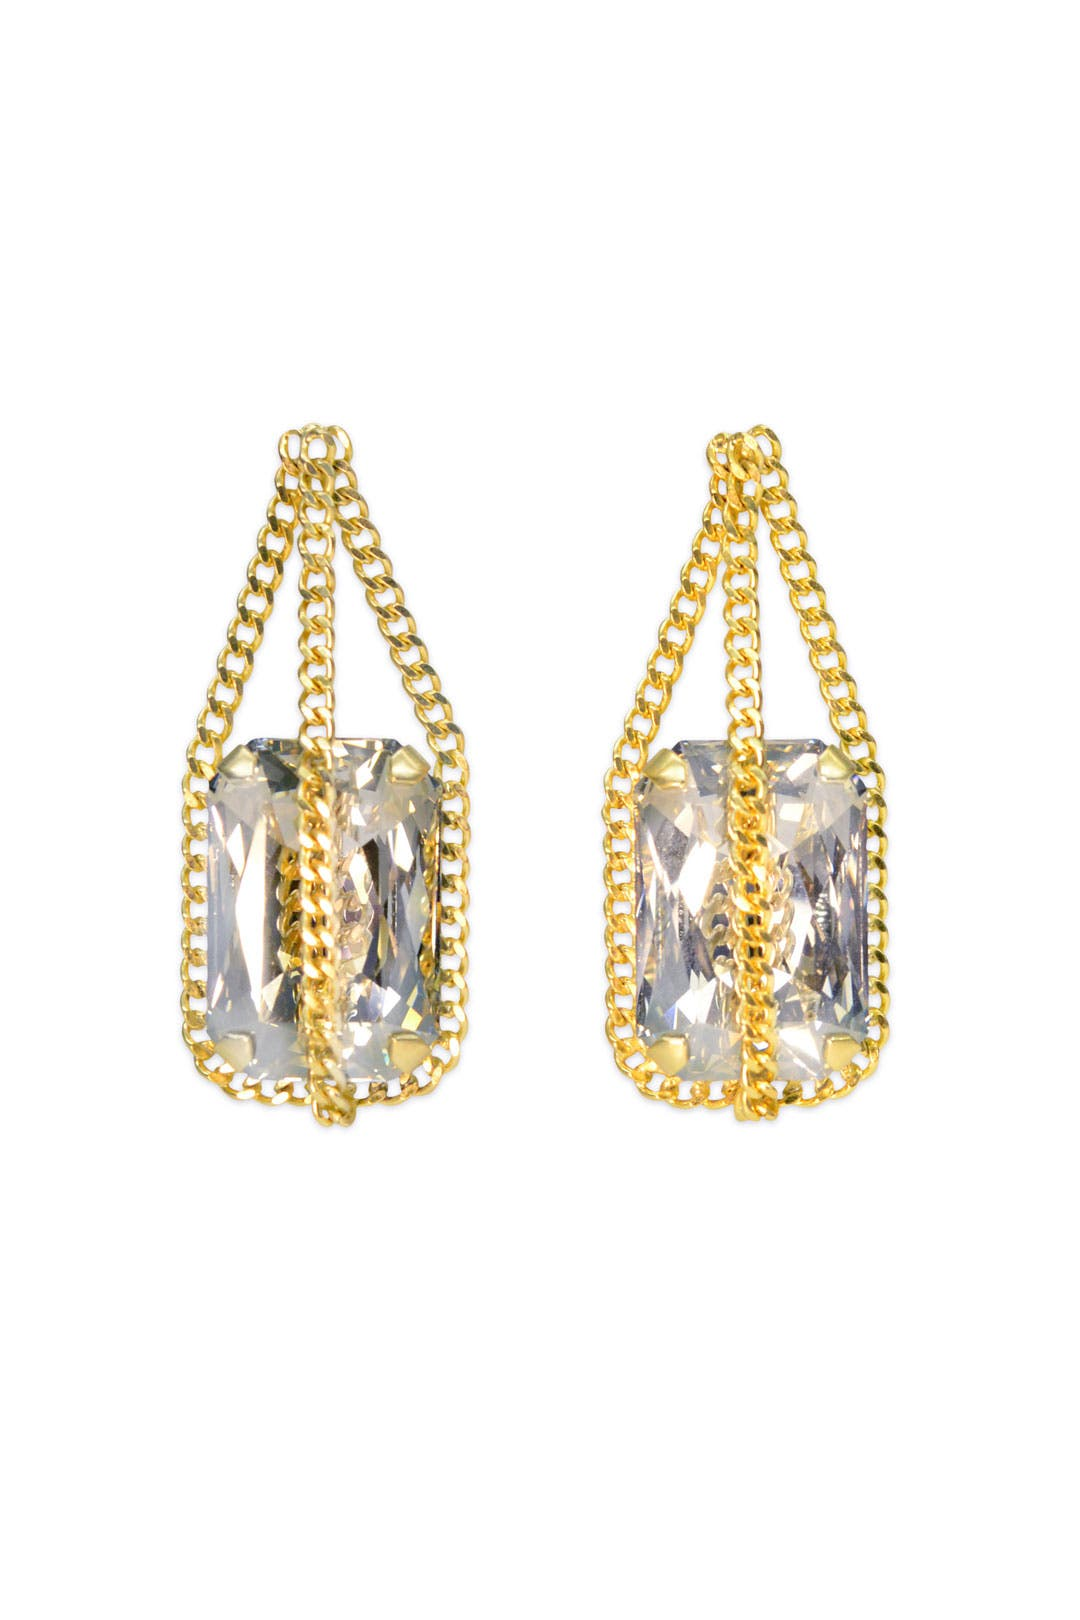 Treasured Gold Earrings by Janis Savitt